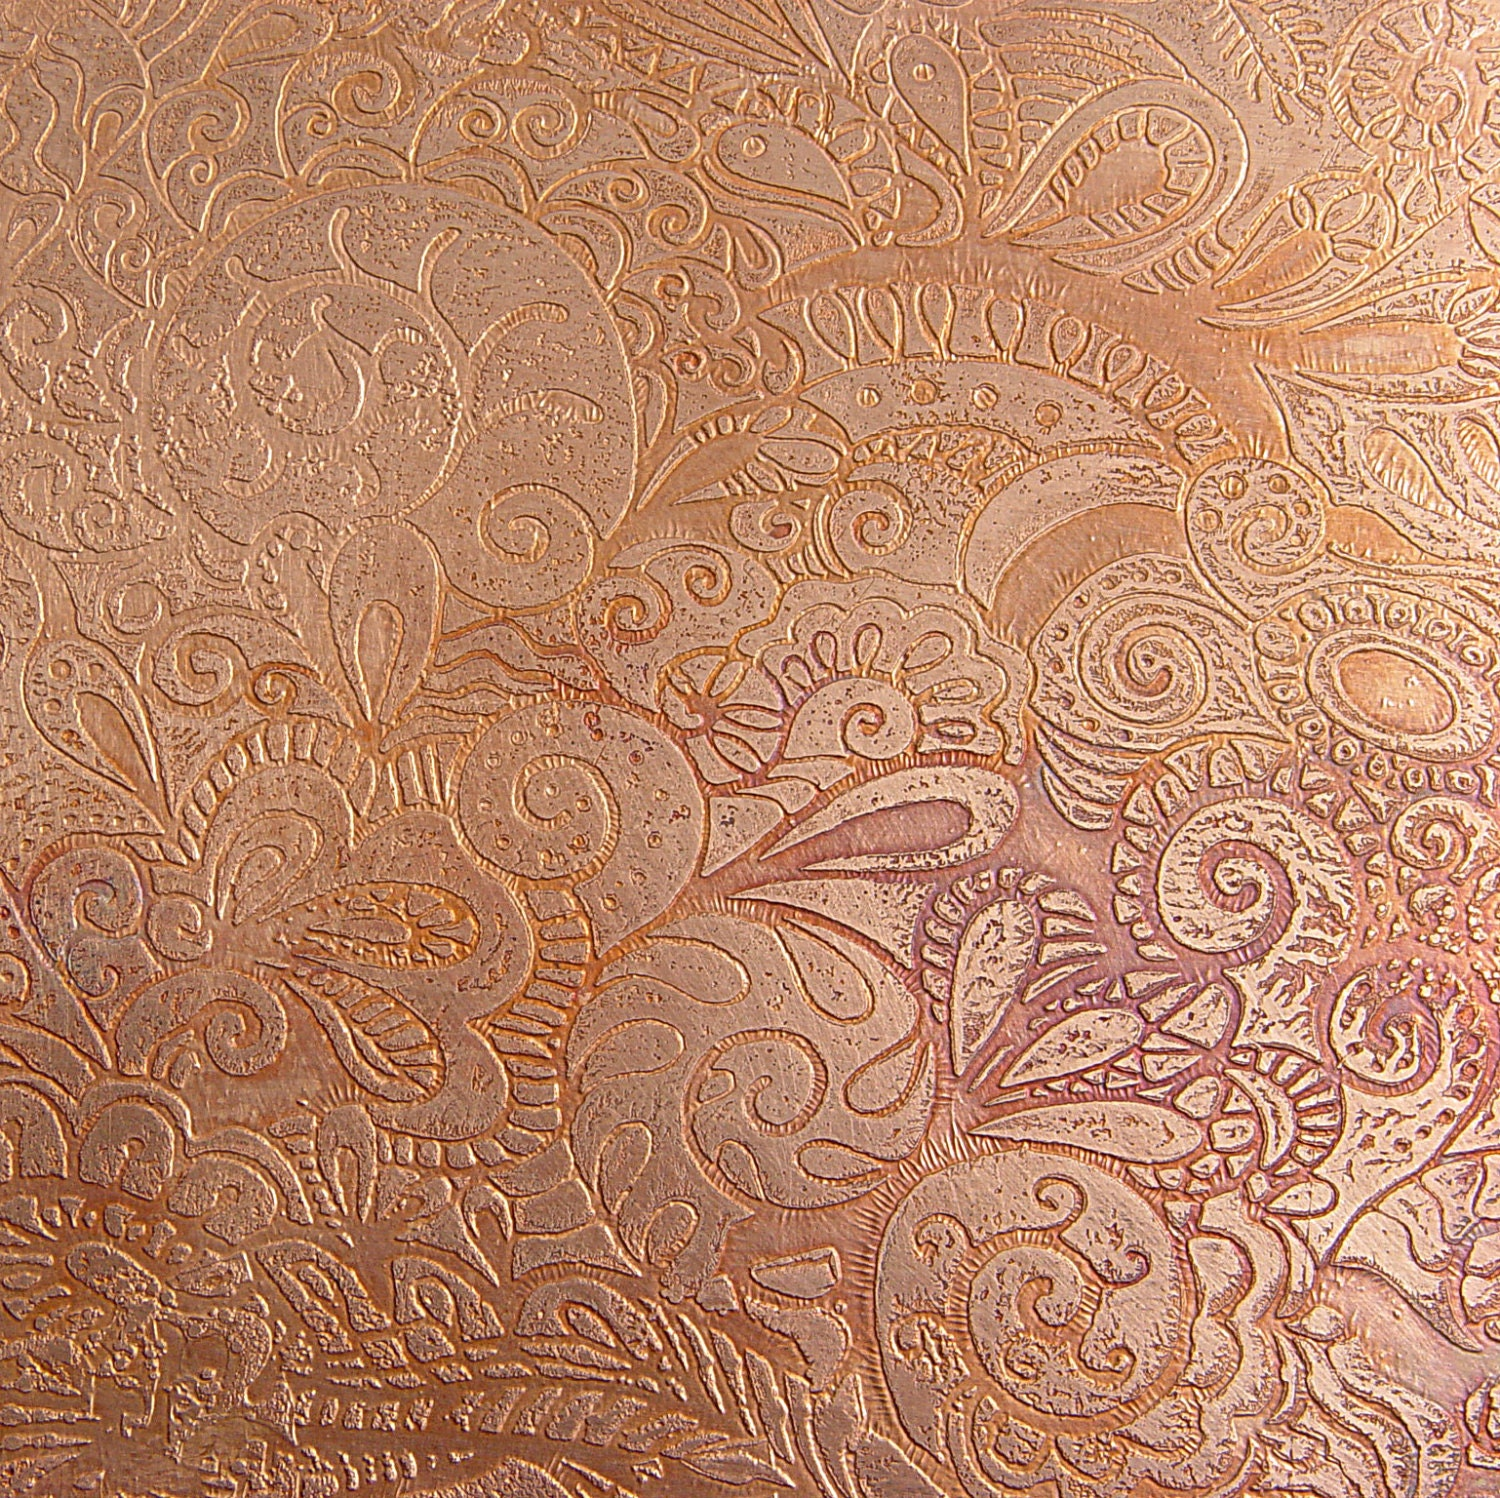 Etched Copper Sheet Paisley Mehndi Texture 4x6 Inches 24g